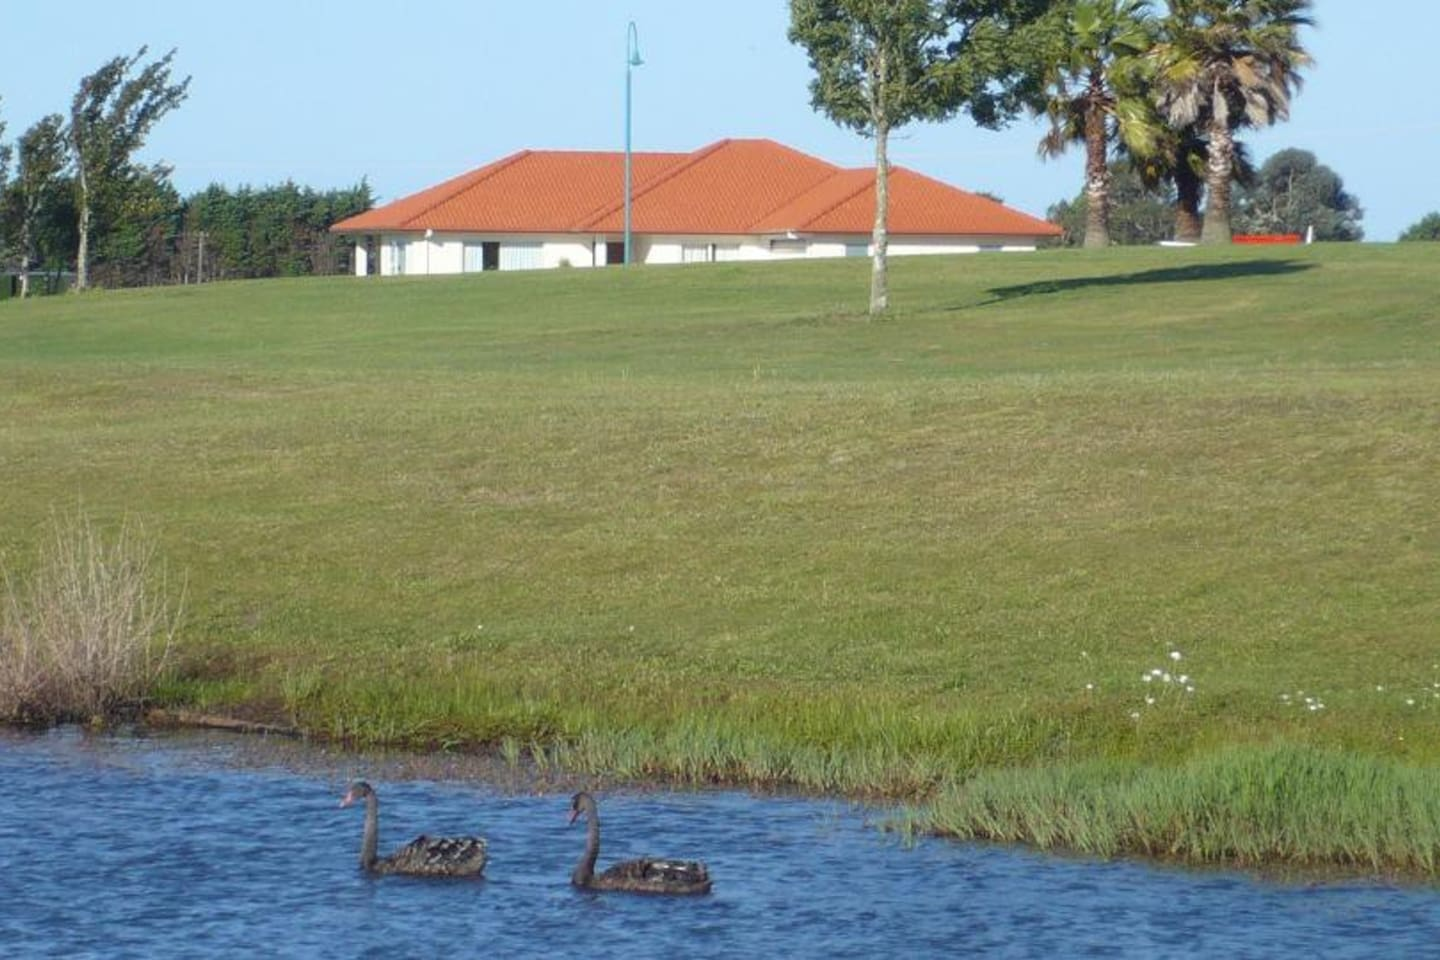 A view of our home from one of the lakes on the golf course.